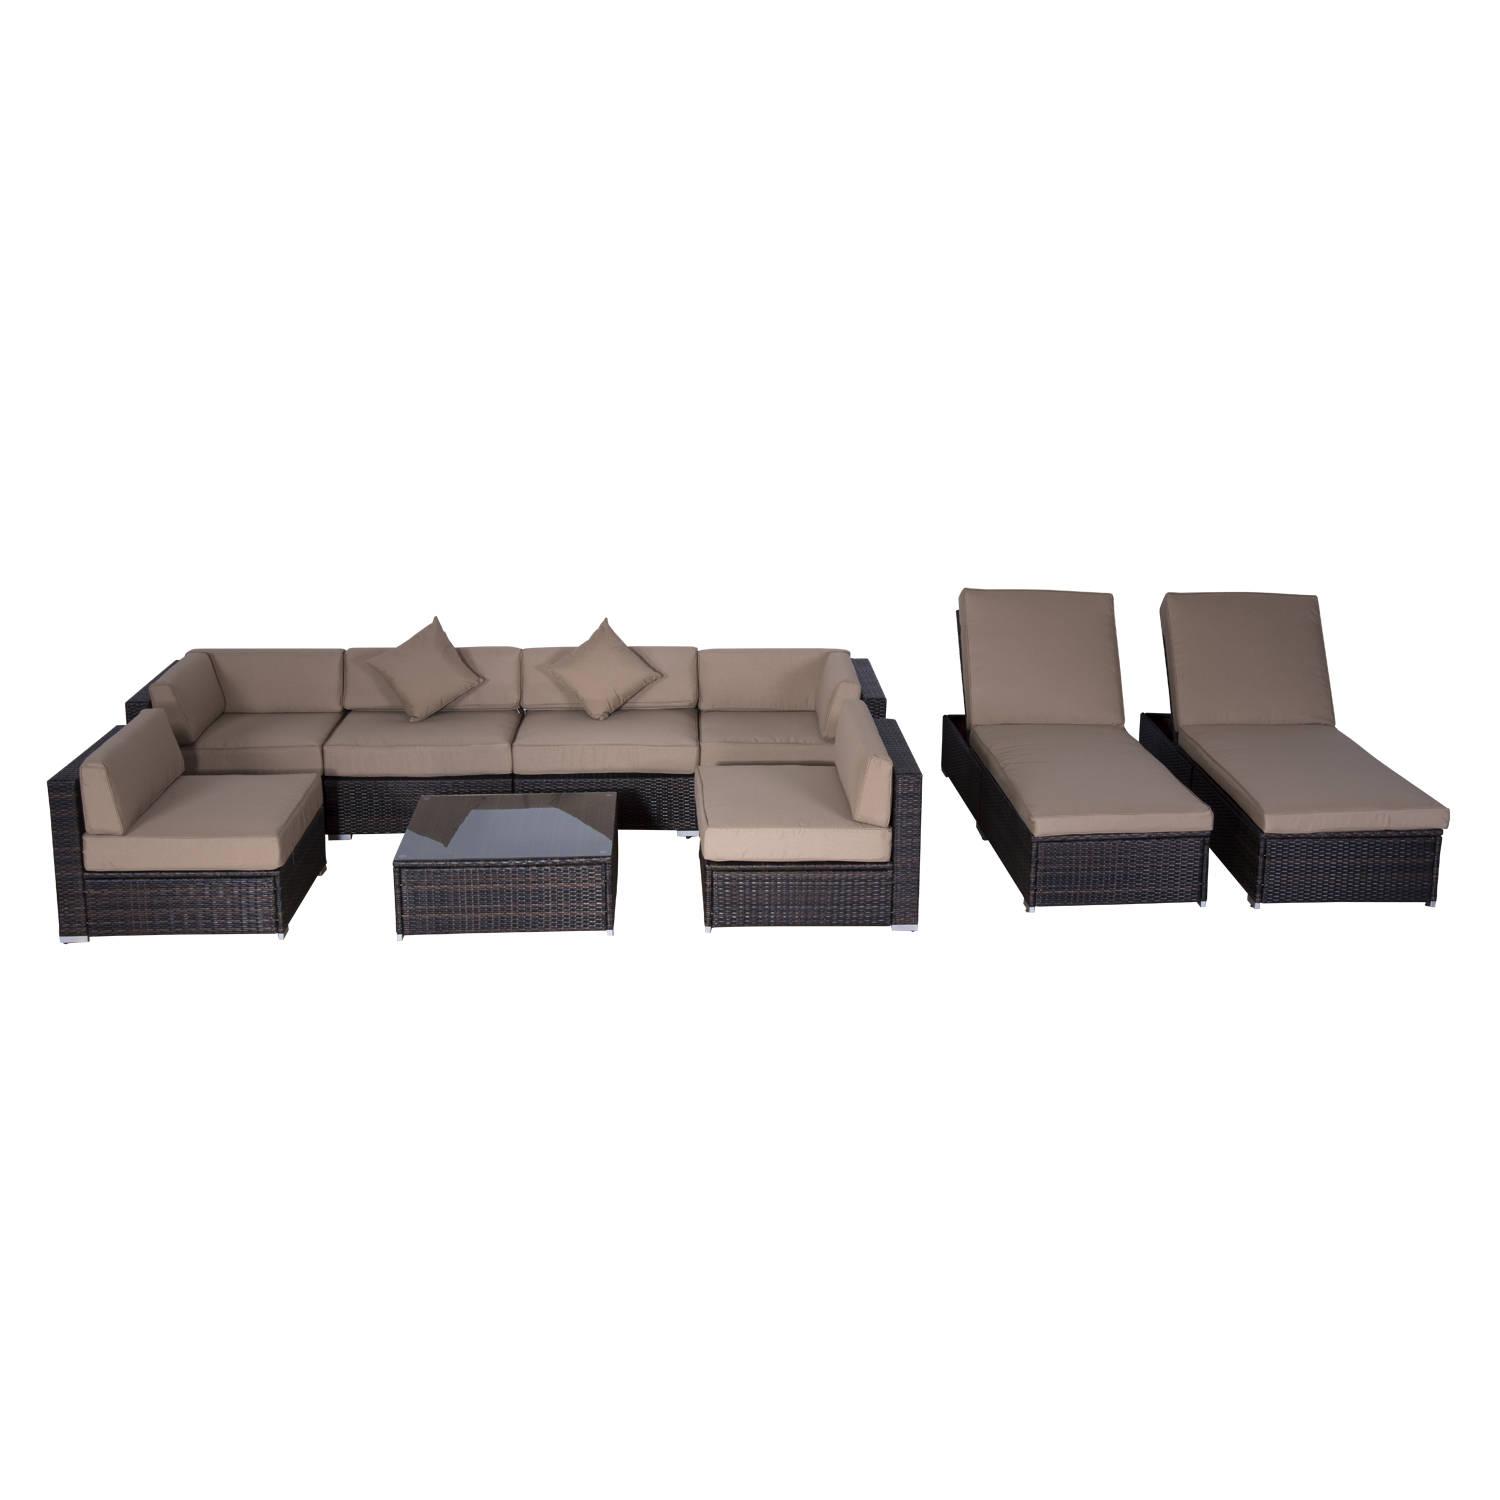 Outsunny Modern 9 Piece Outdoor Patio Rattan Wicker Sofa Sectional U0026 Chaise  Lounge Furniture Set